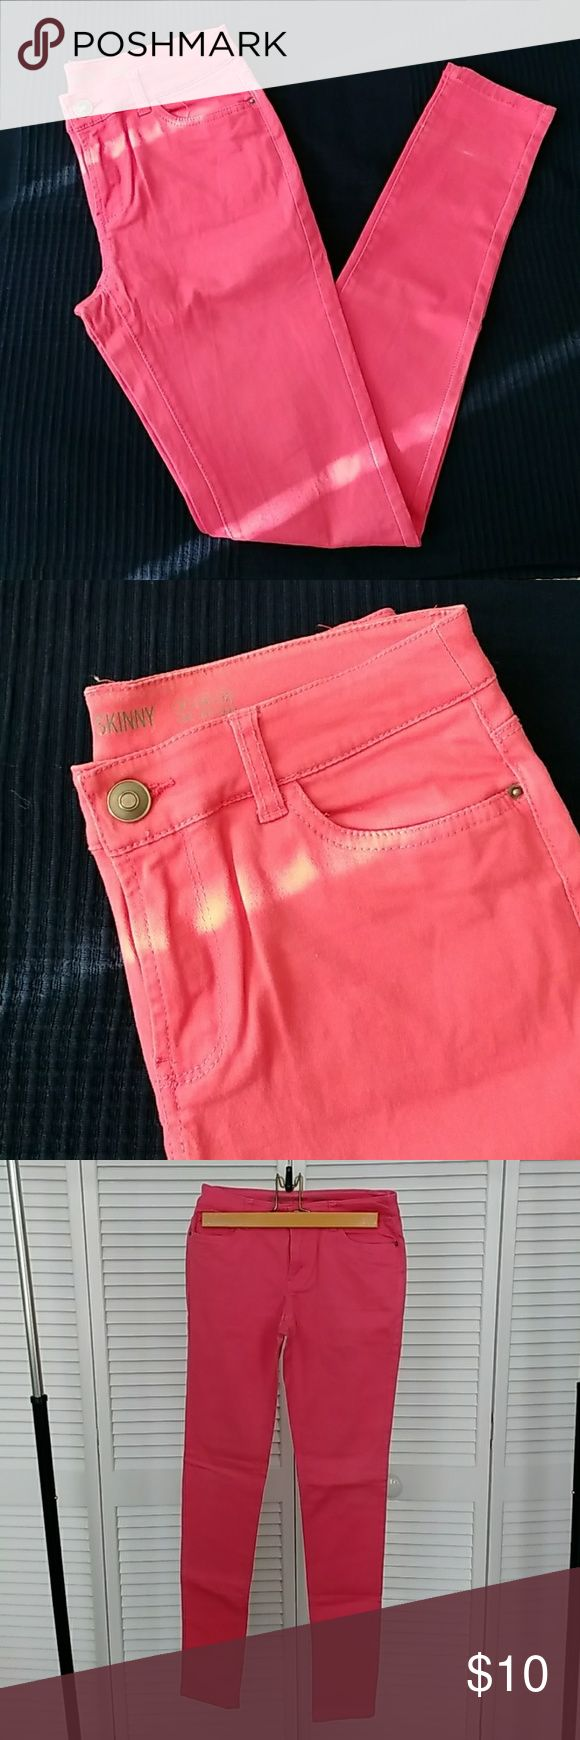 Coloured skinny jeans Skinny jeans in a colour between red and pink primark Jeans Skinny